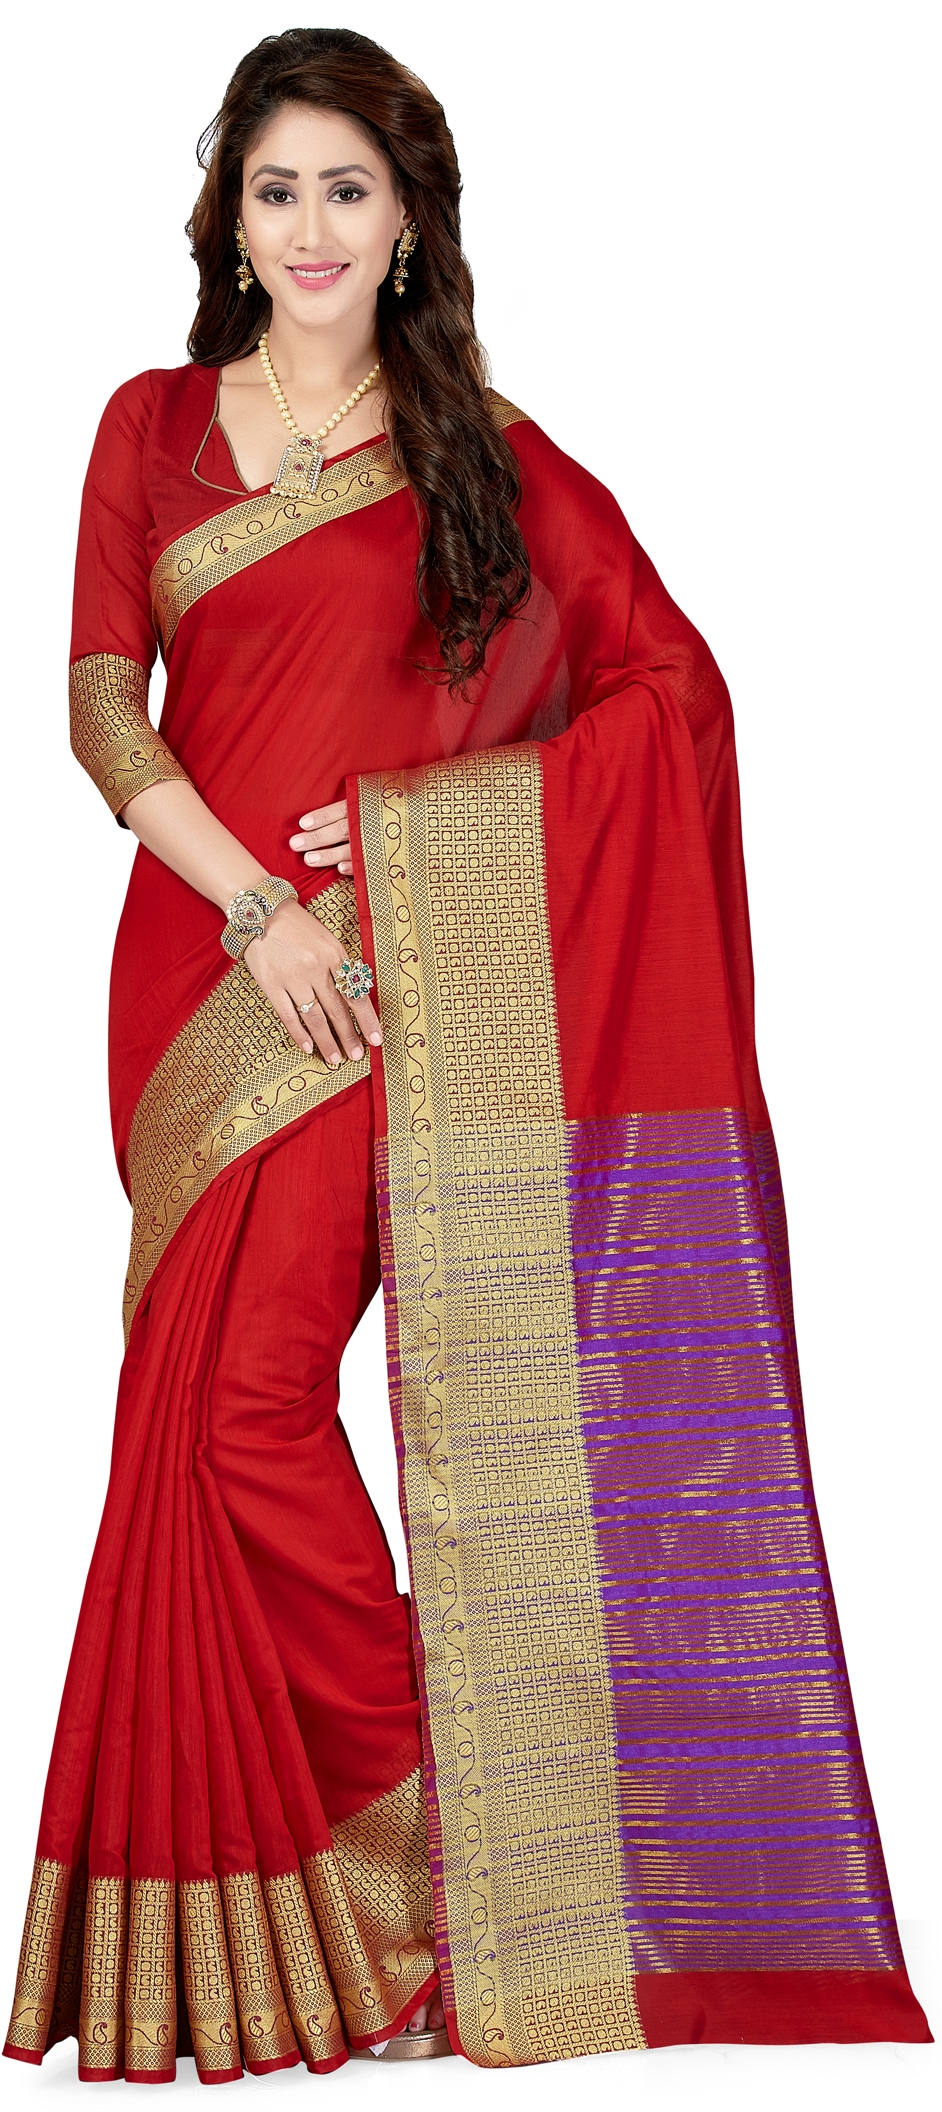 771669: Red and Maroon color family Party Wear Sarees with matching ...